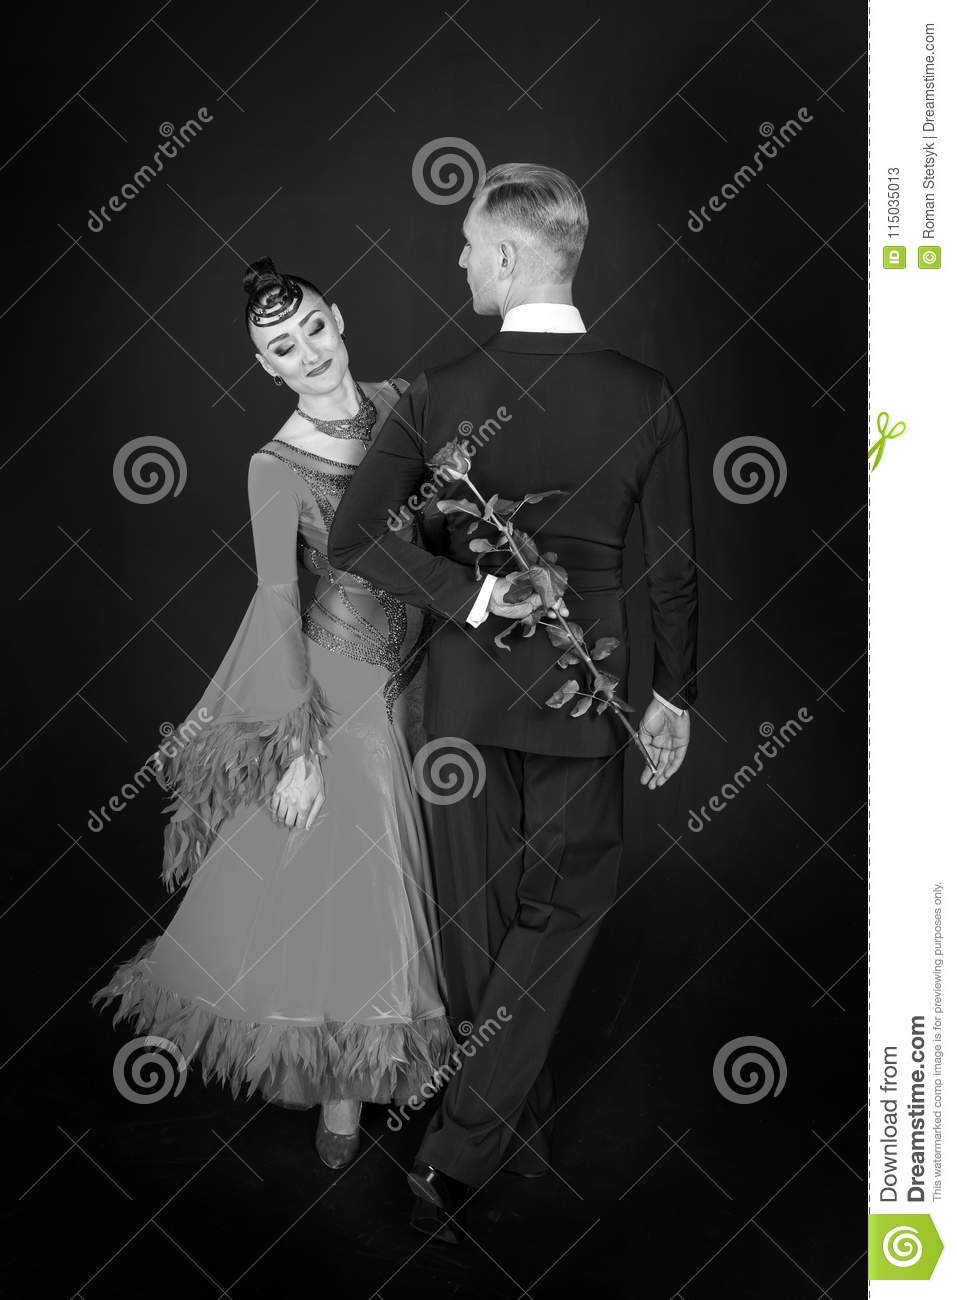 Valentines Day Celebration Sensual Woman And Man Dance With Rose